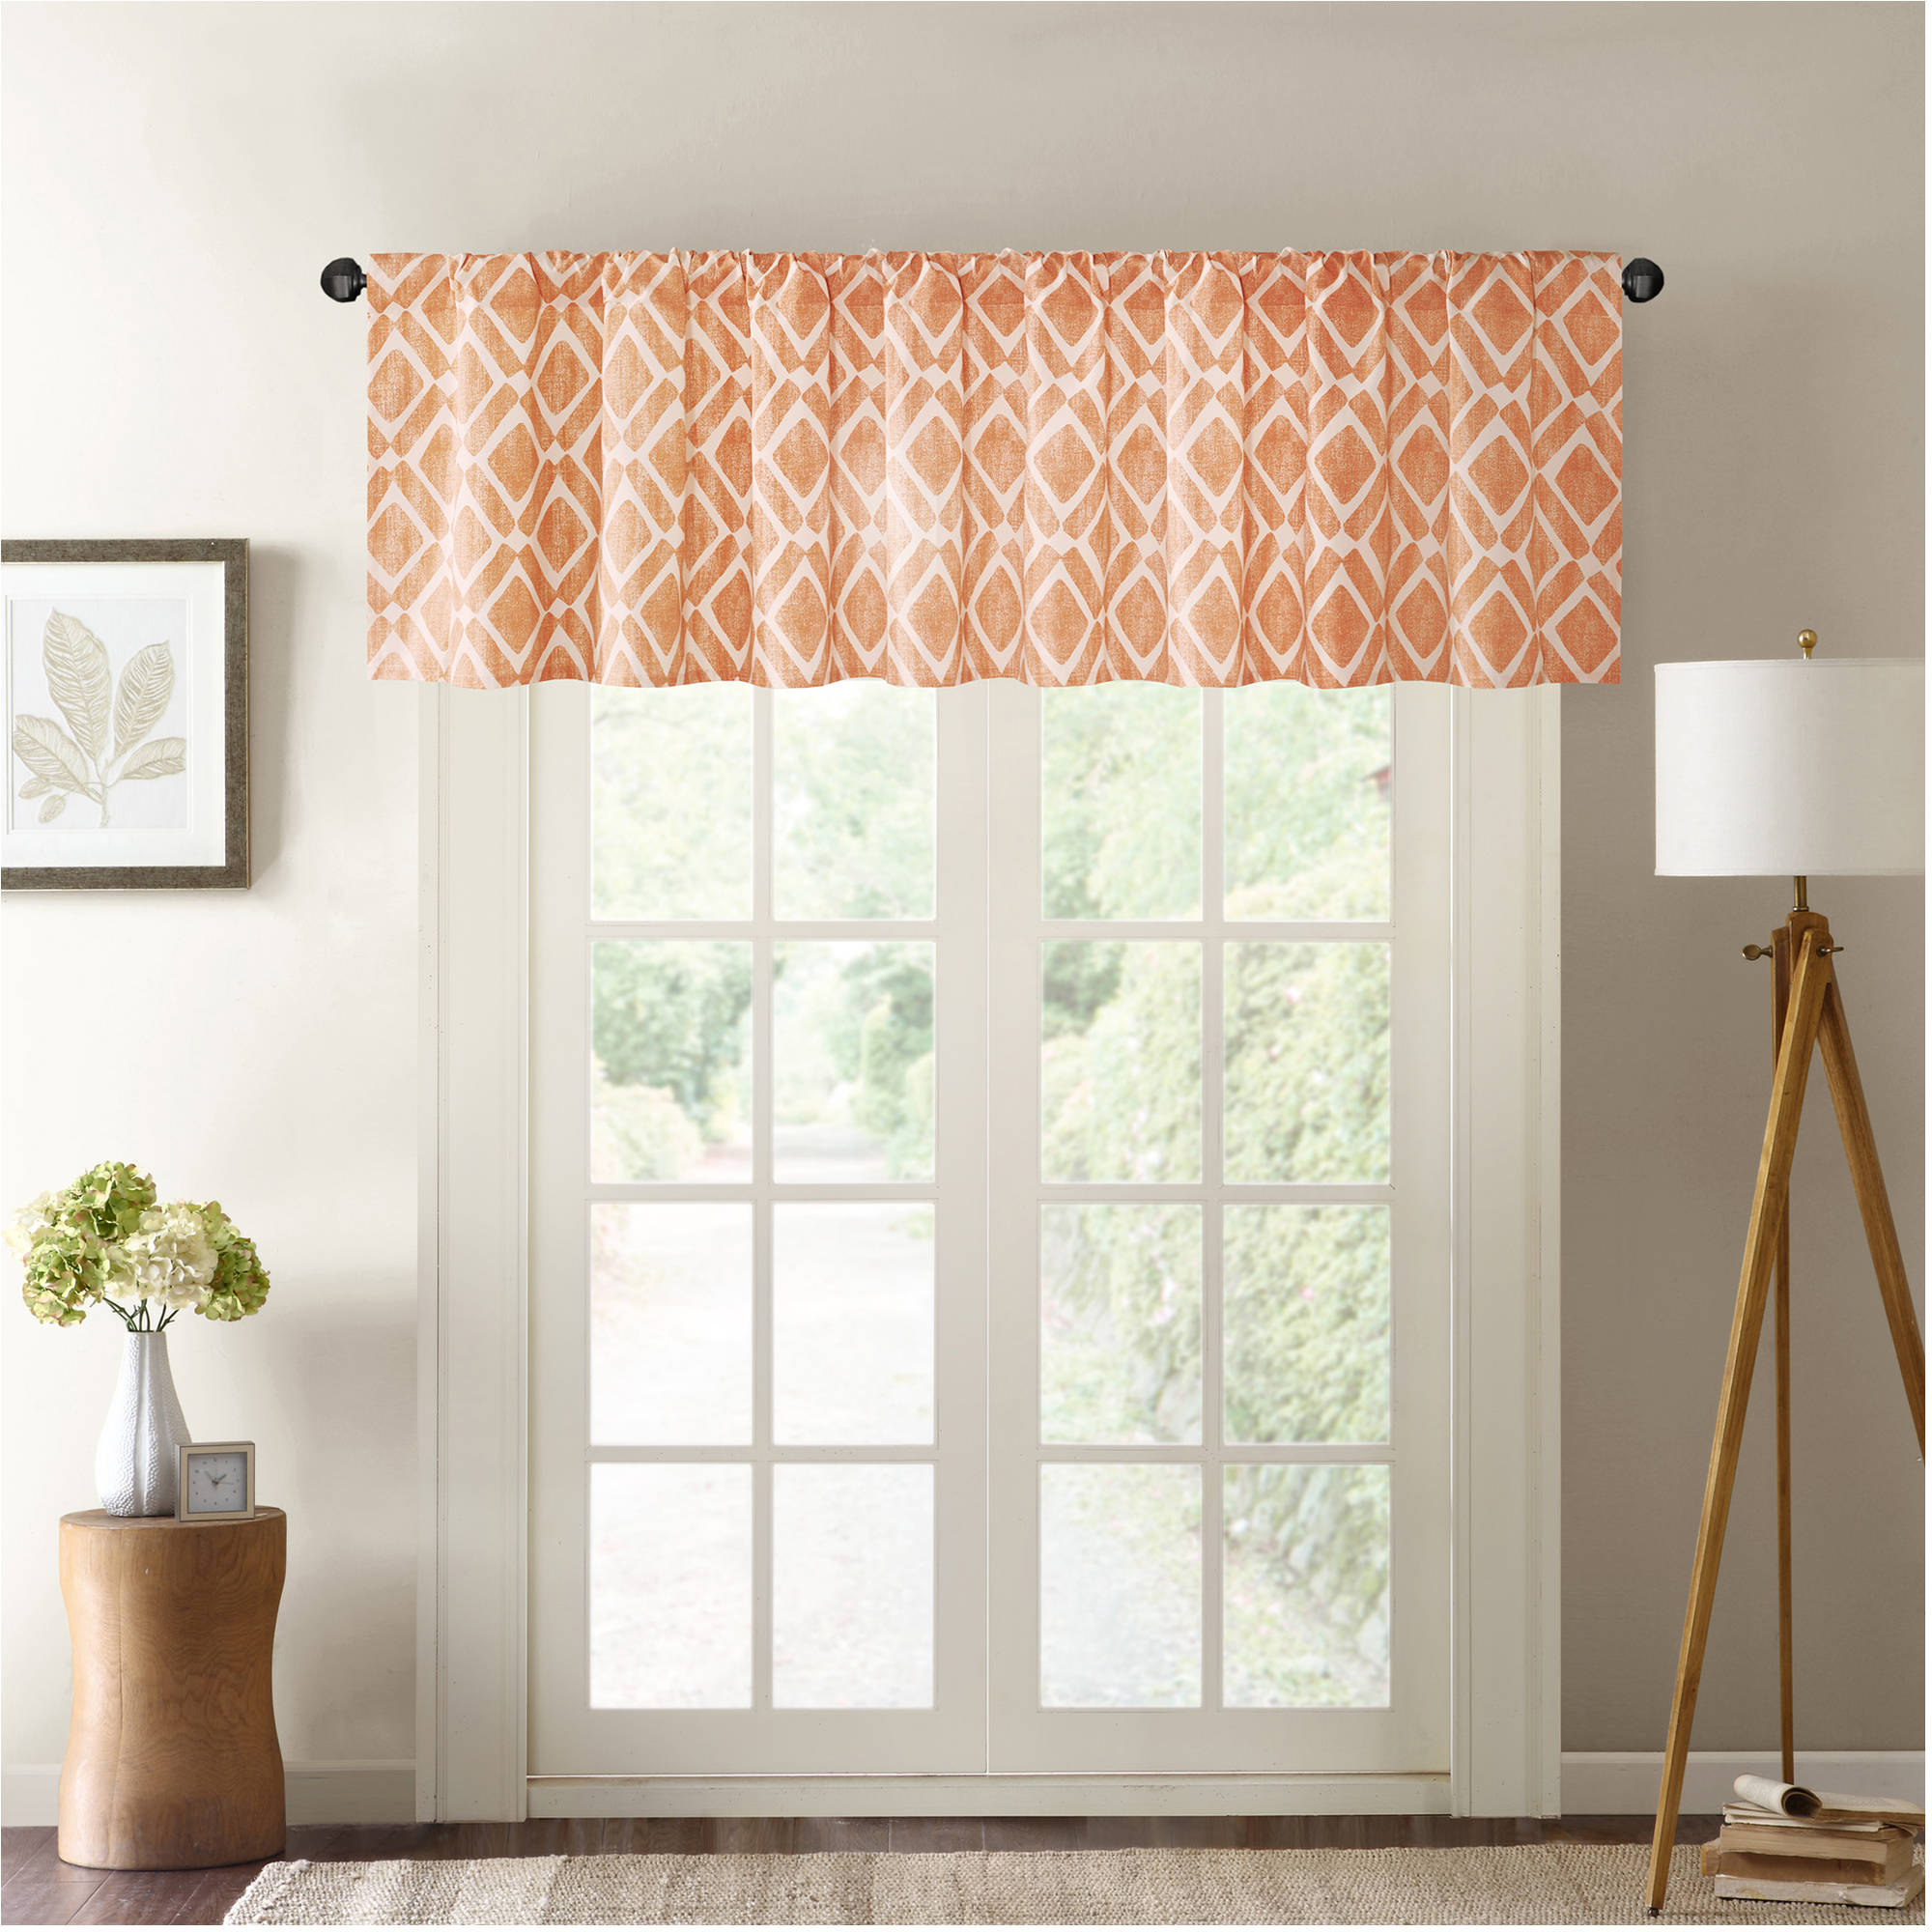 Home Essence Natalie Printed Diamond Window Valance